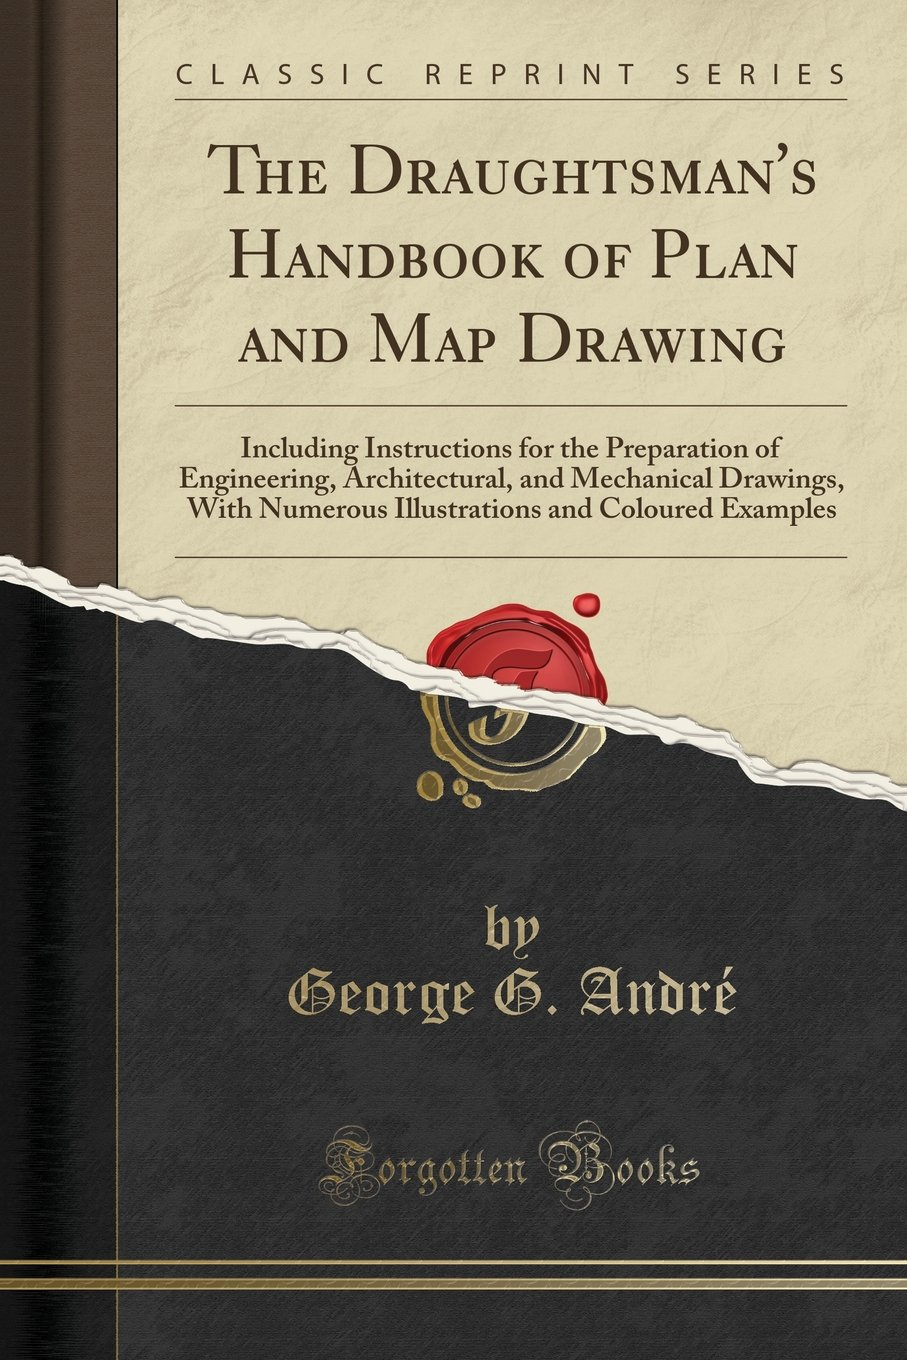 The Draughtsman's Handbook of Plan and Map Drawing: Including Instructions for the Preparation of Engineering, Architectural, and Mechanical Drawings, ... and Coloured Examples (Classic Reprint) ebook